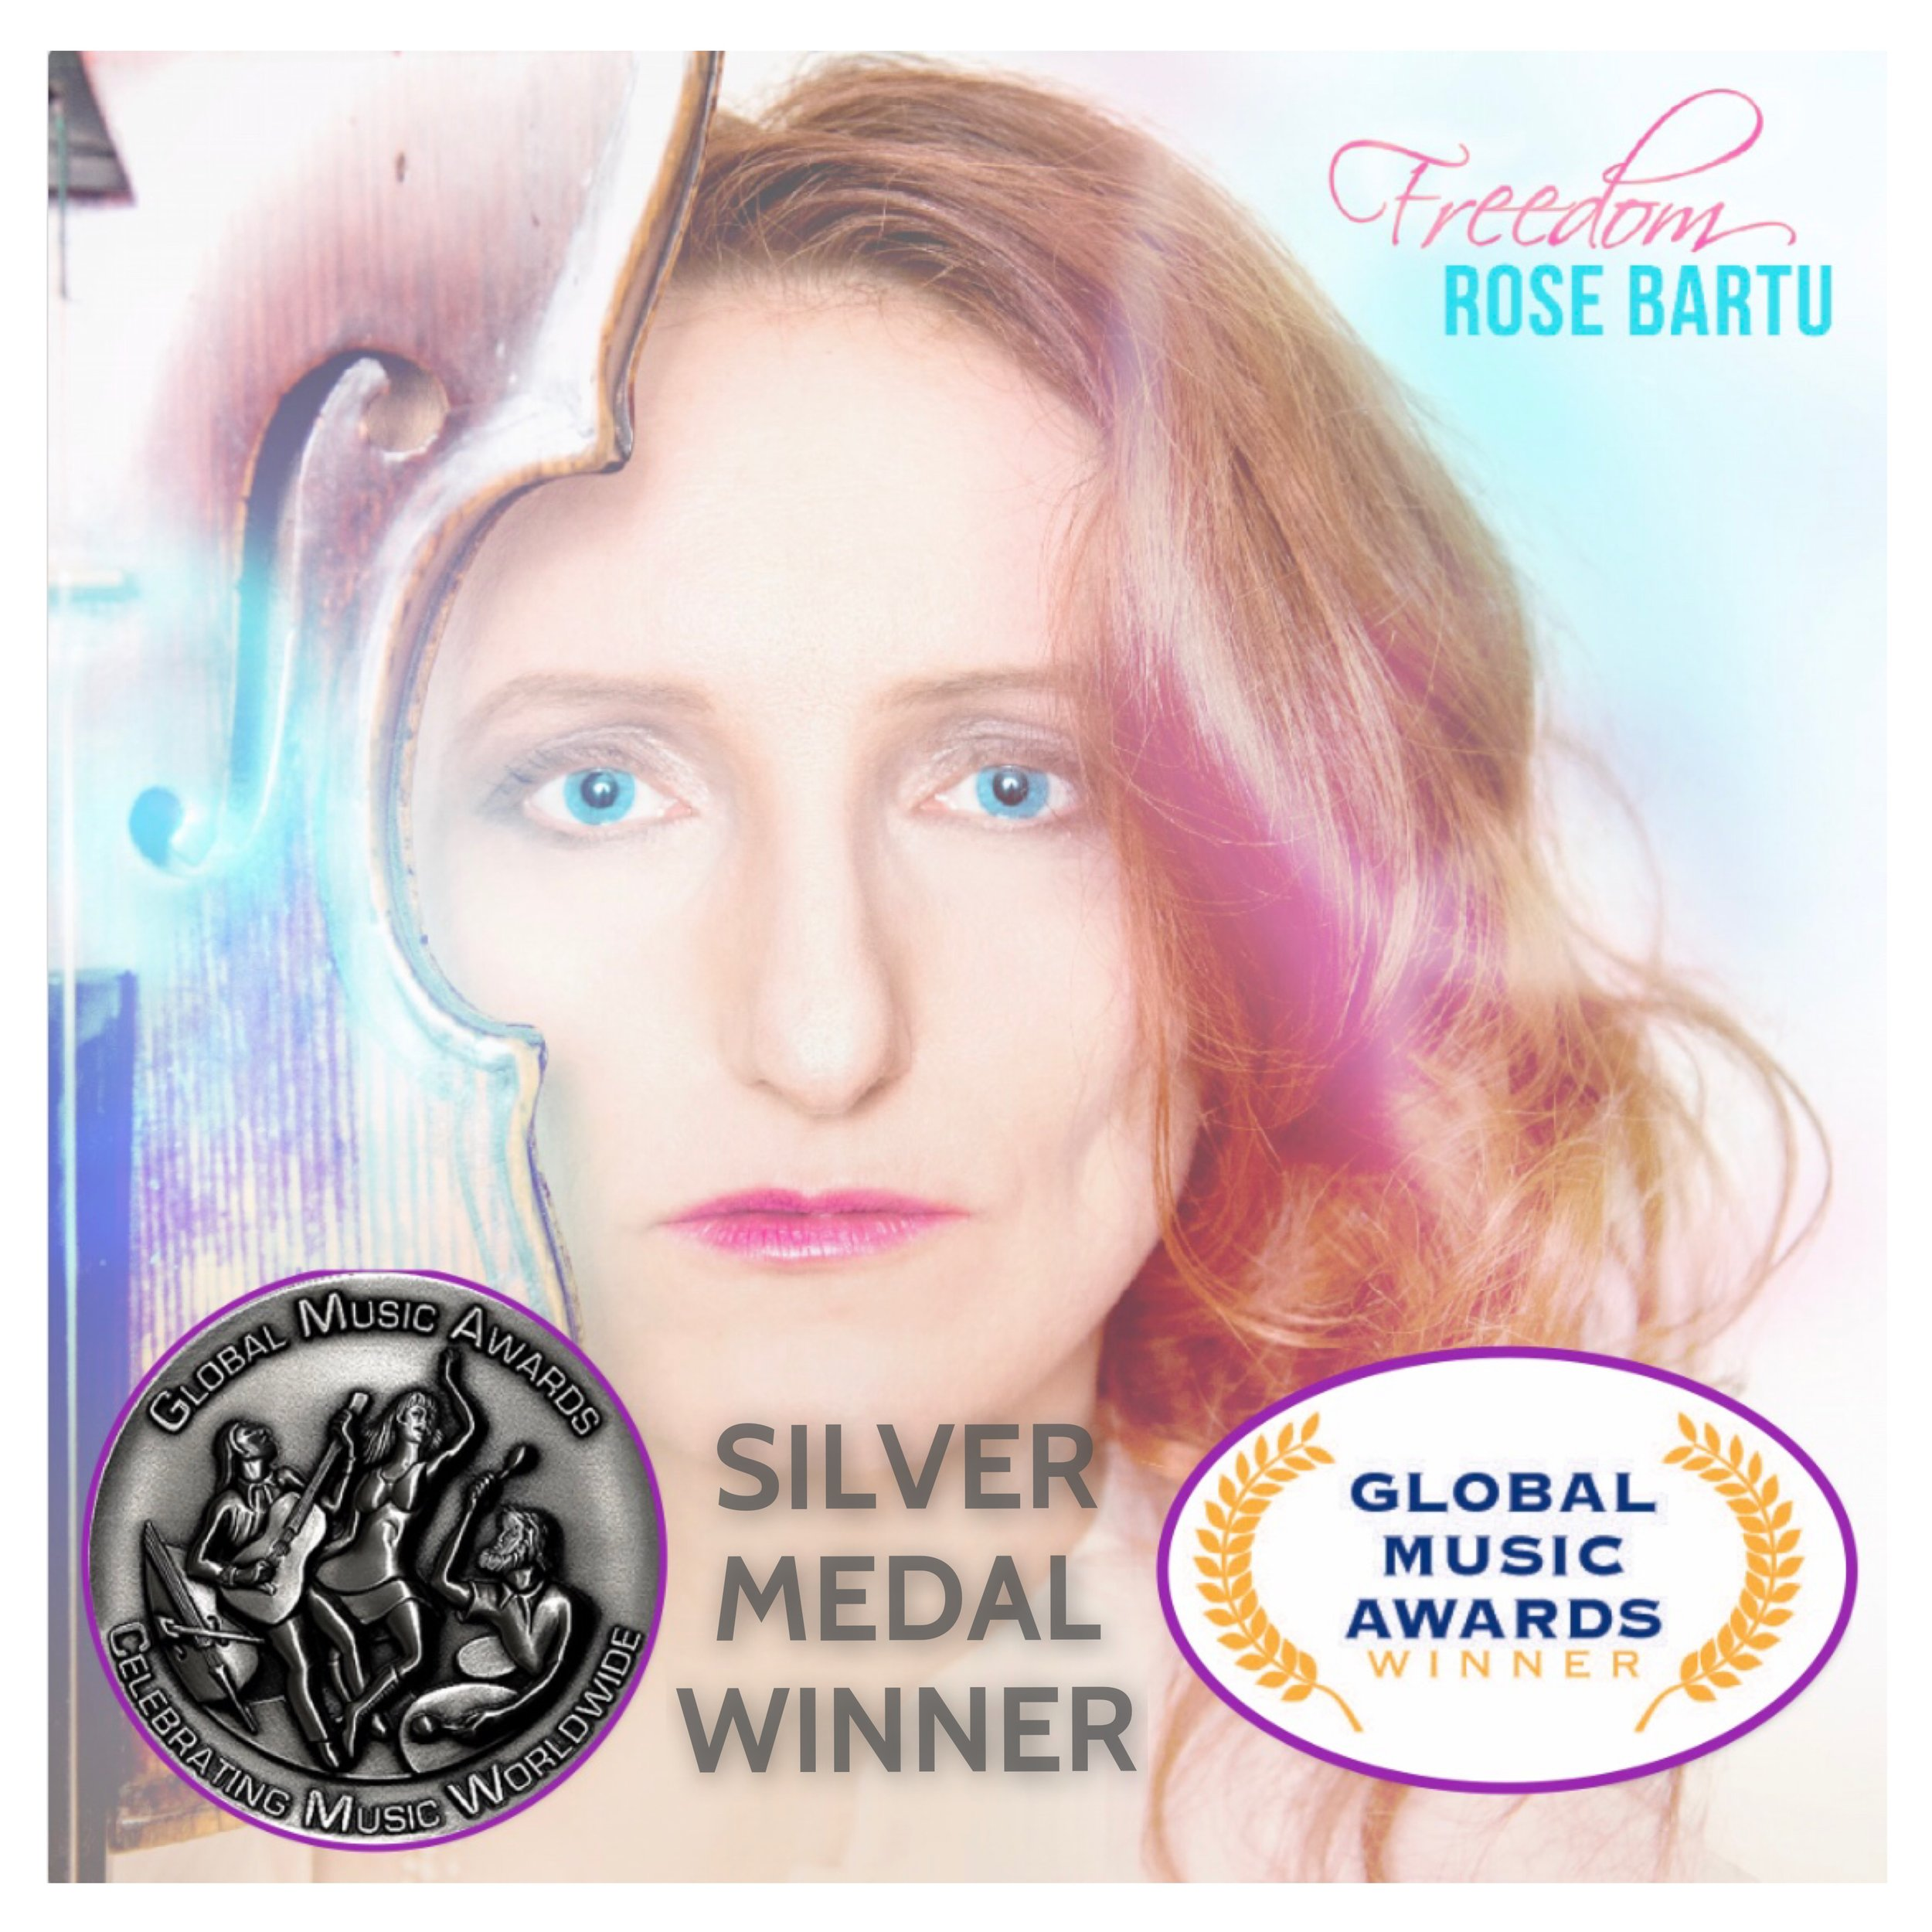 The  Single FREEDOM  won the Silver Medal for the Global Music Awards!